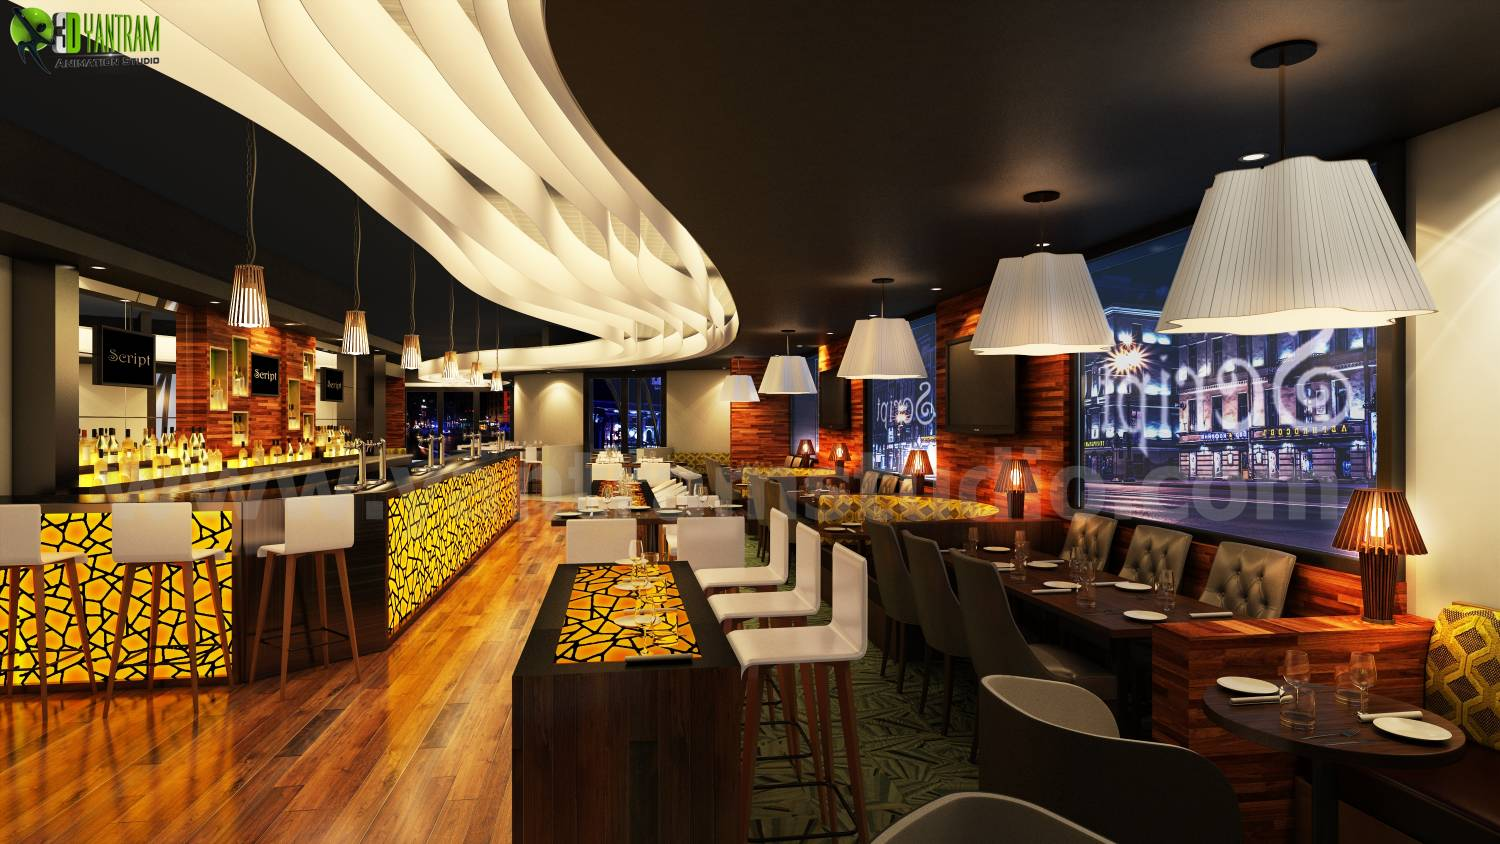 Amazing Design Of Bar 3D Interior Night View Rendering Liverpool